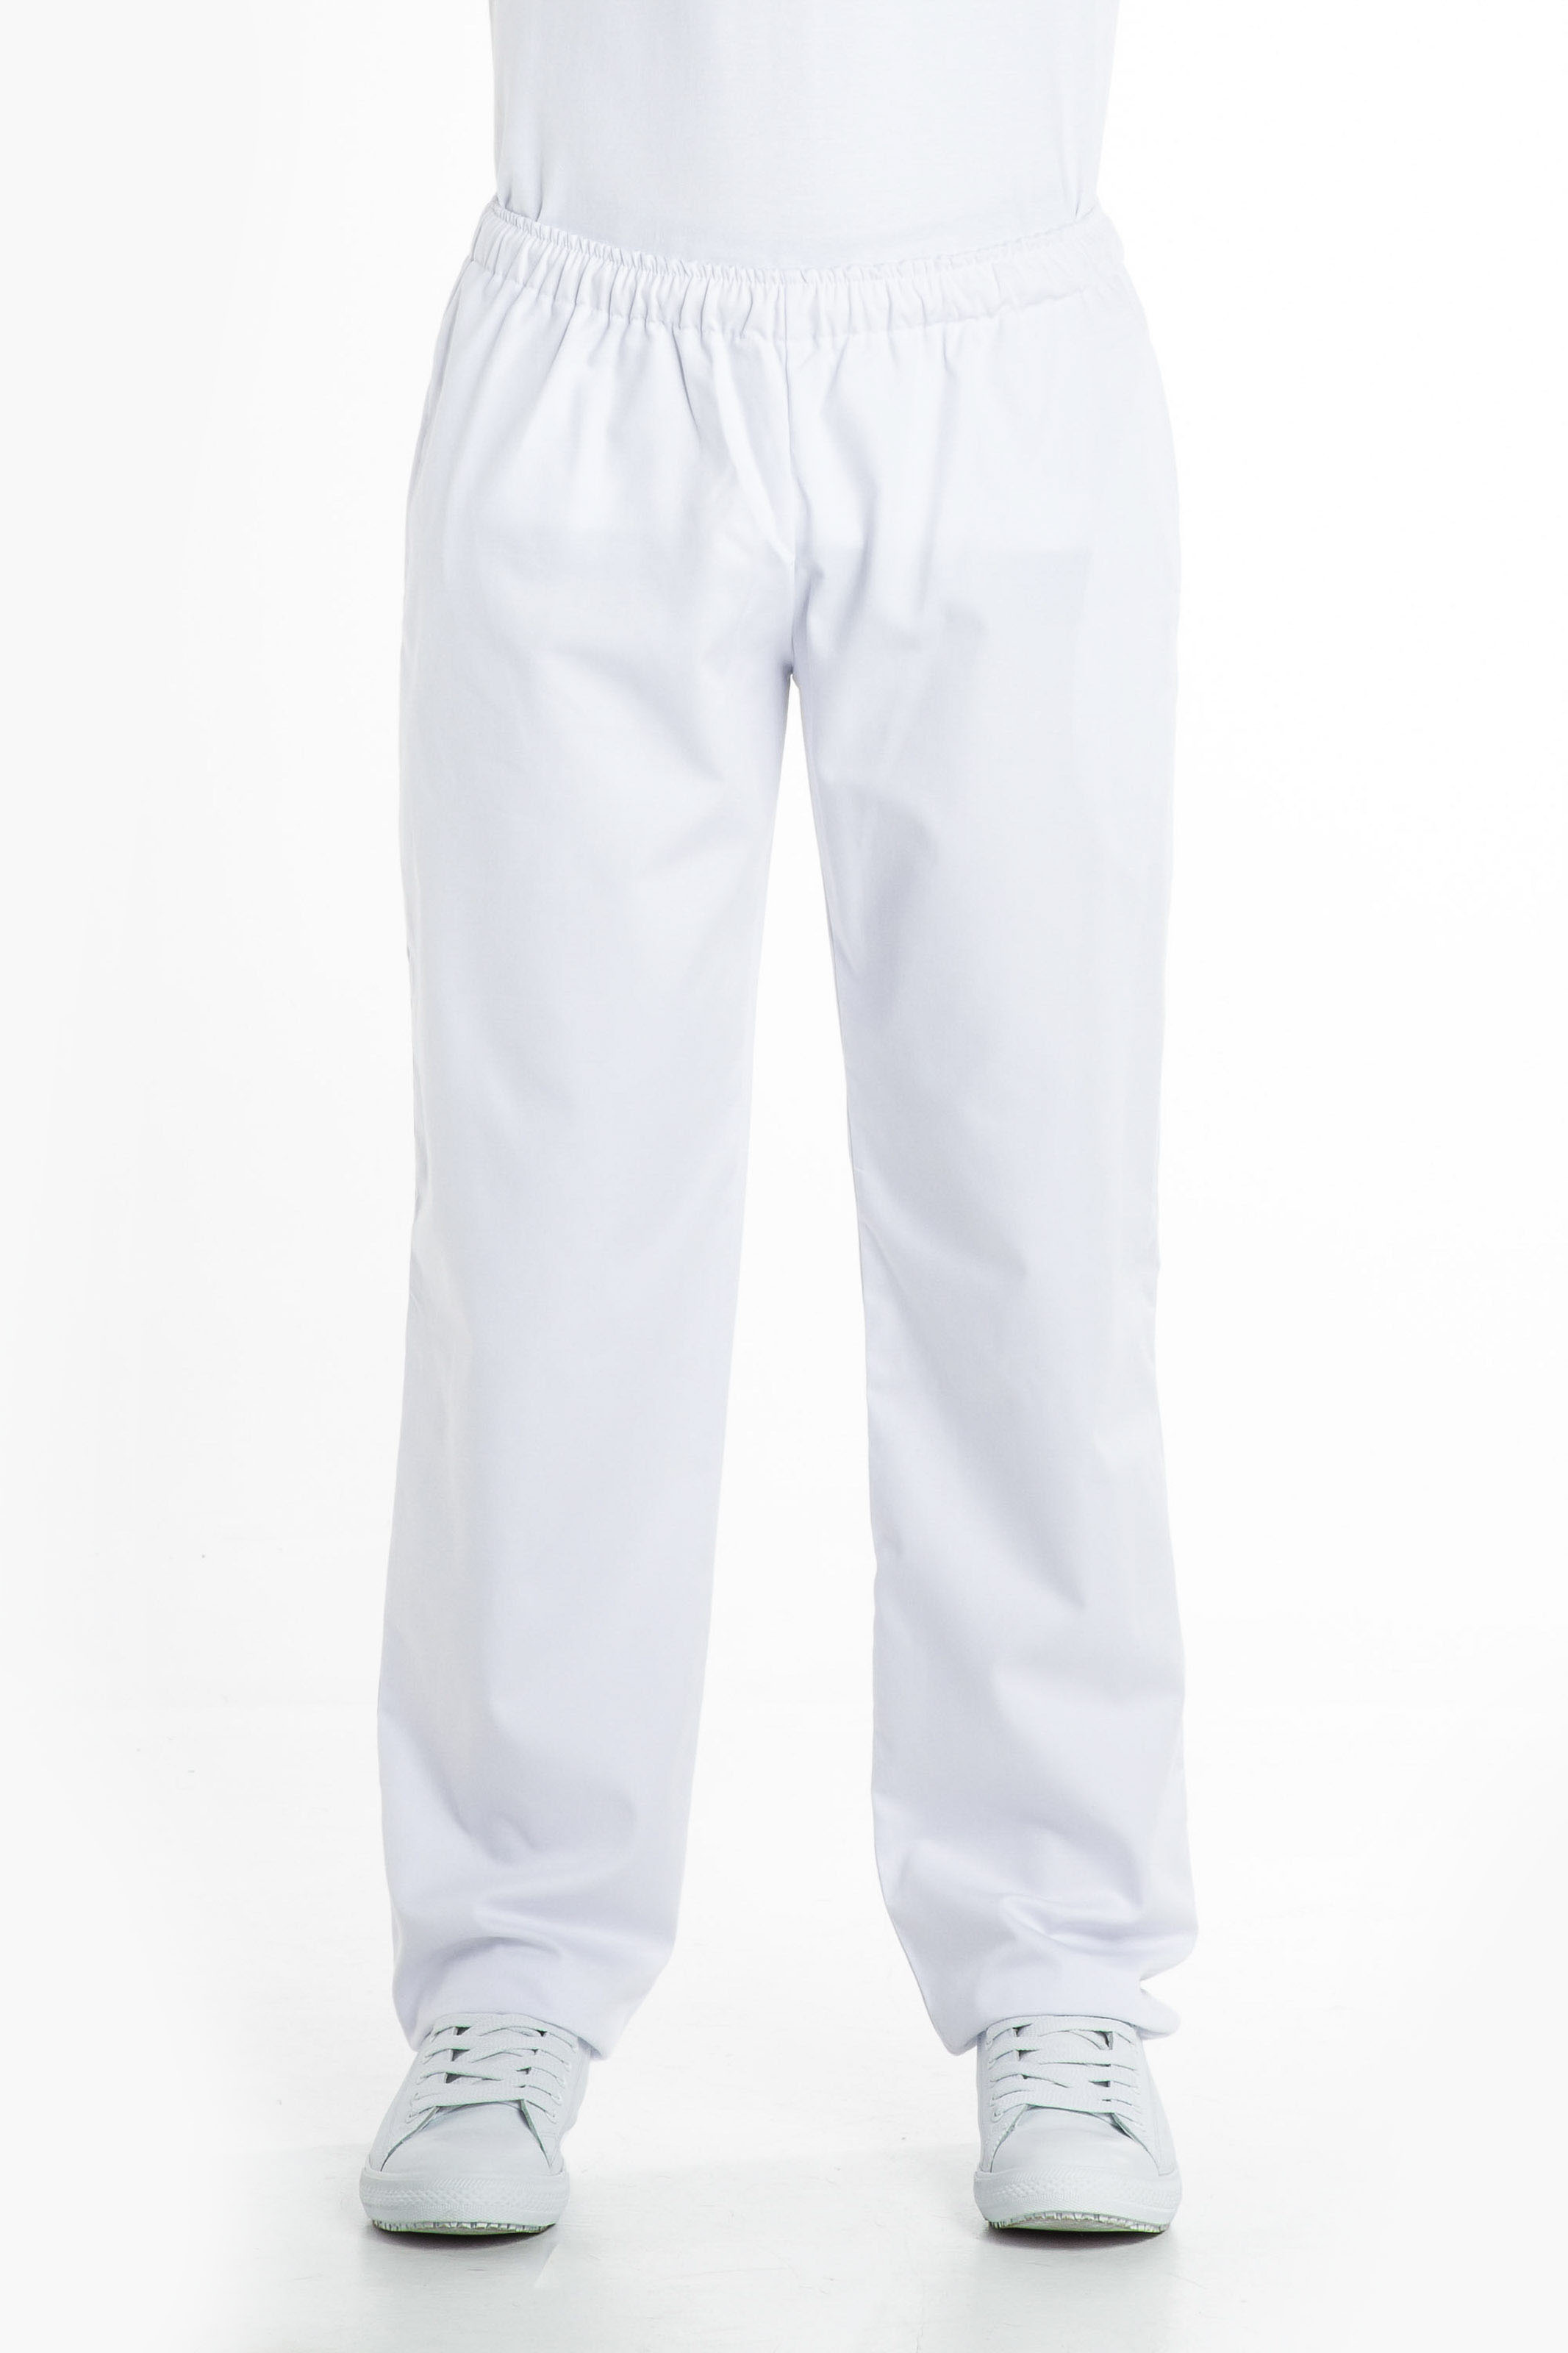 Aris Uniforms-UT01-Unisex Drawstring Trouser